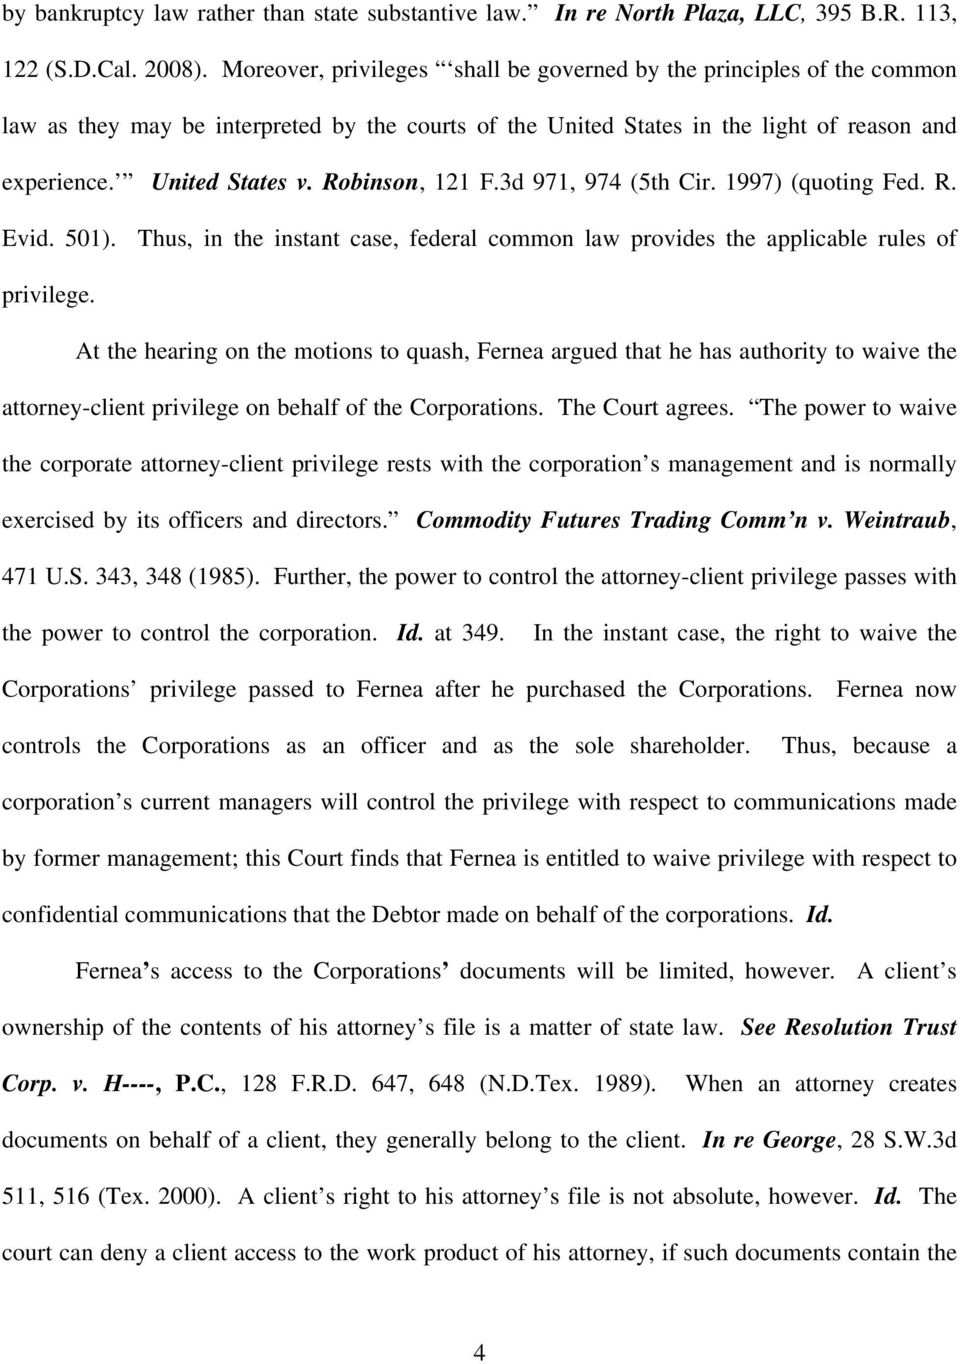 Robinson, 121 F.3d 971, 974 (5th Cir. 1997) (quoting Fed. R. Evid. 501). Thus, in the instant case, federal common law provides the applicable rules of privilege.